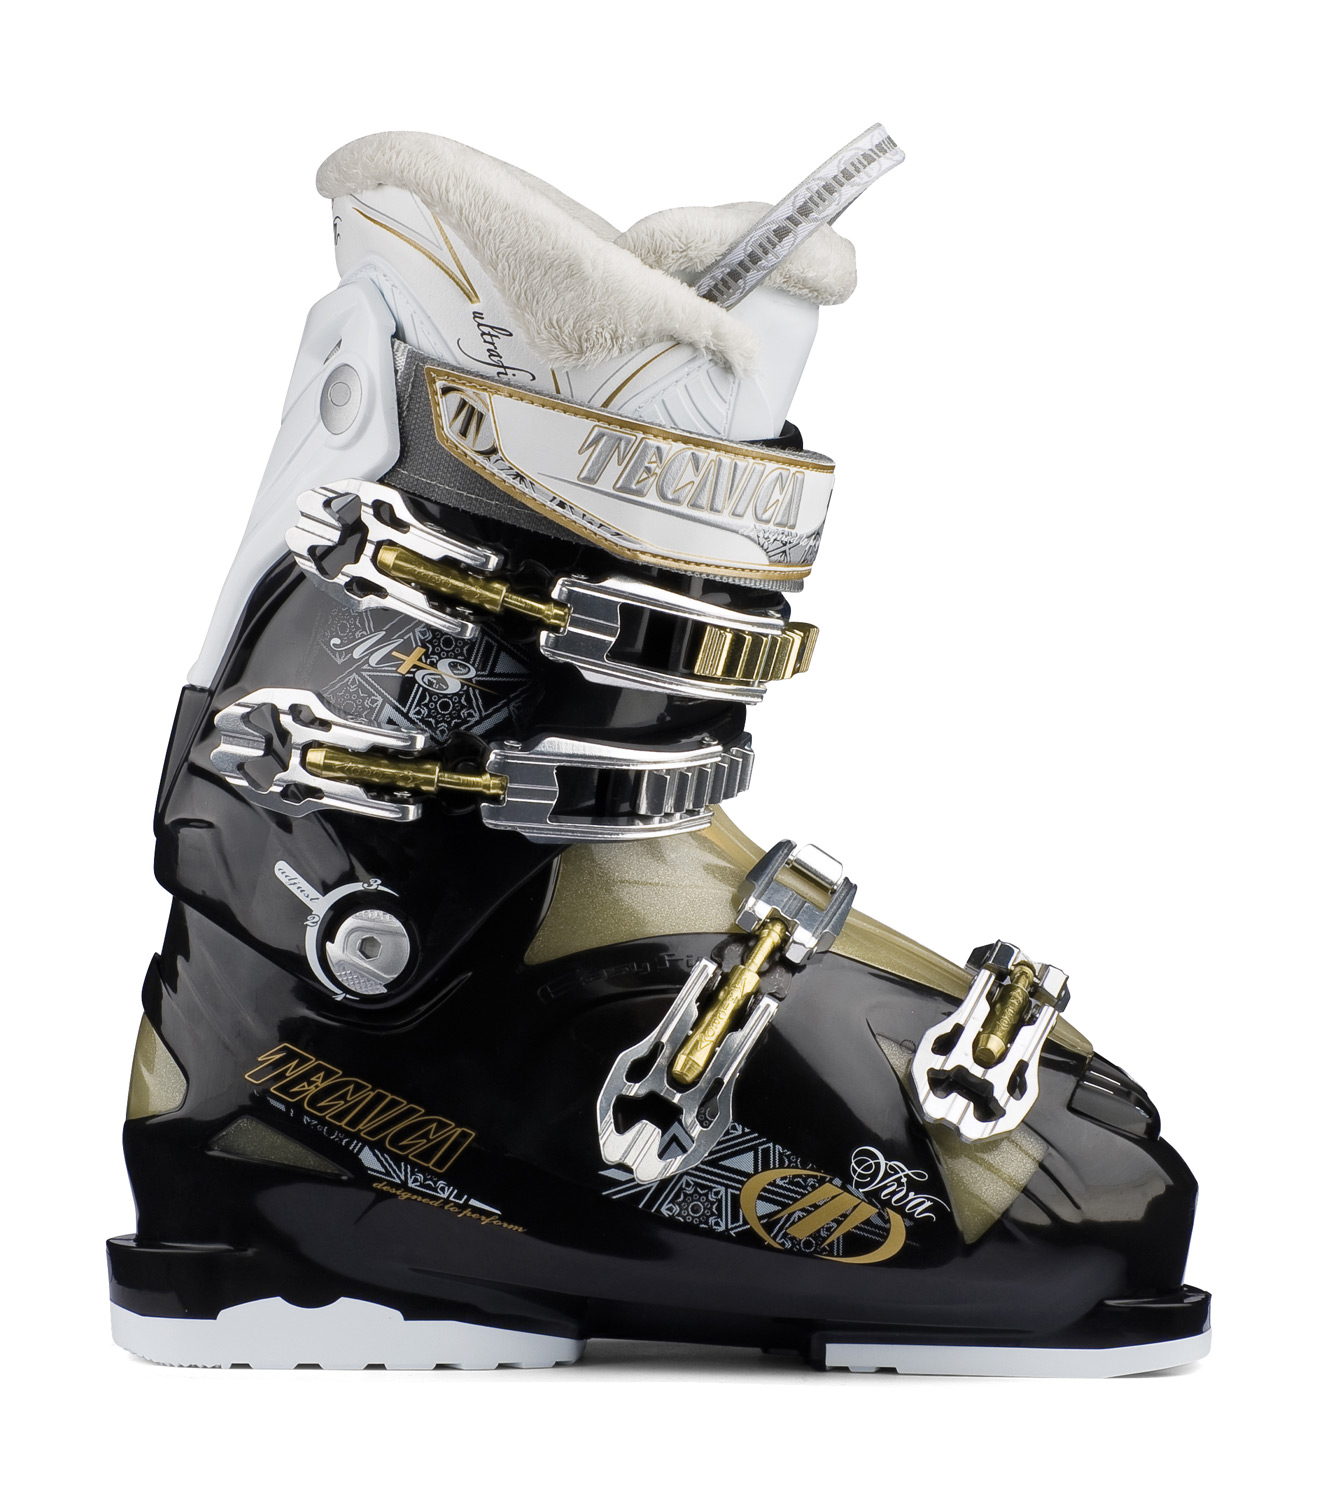 Ski Key Features of the Tecnica Viva M 8 Ski Boots: 3 Density Technology PCS Liner System Viva PCS Footbed Viva Heel Cradle Cuff Alignment Progressive Flex System Power Spoiler Mega Alu Micro Buckles Easy Move Cuff Catch Triple Position Cuff Catches Viva Flared Scalloped Calf Flex: 70 Last: 105mm: C-E Widths - $199.95